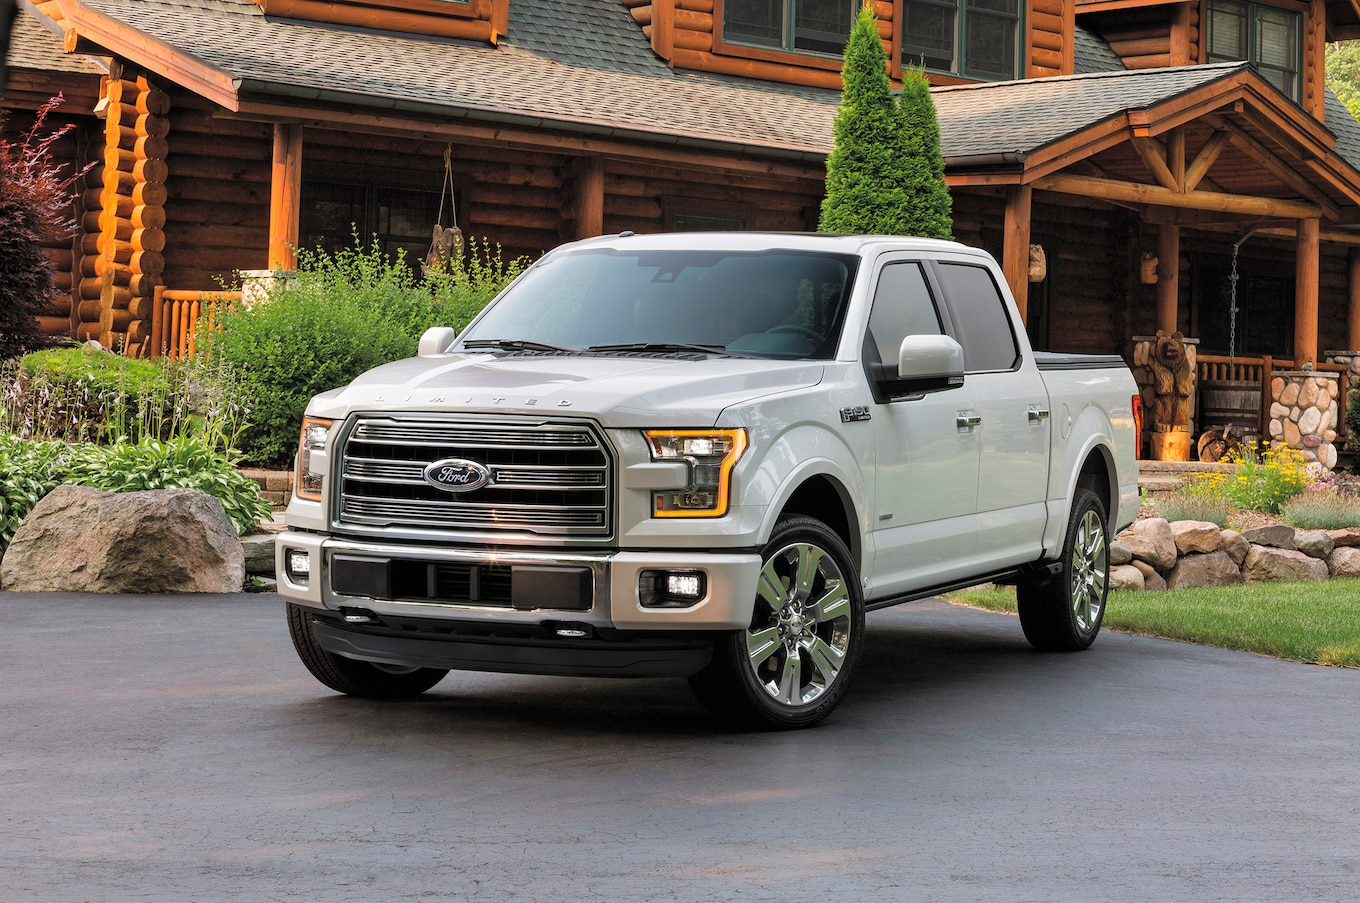 medium resolution of 2016 ford f 150 reviews research f 150 prices specs motortrend ford f150 front suspension diagram by admin on may 20 2015 ford f150